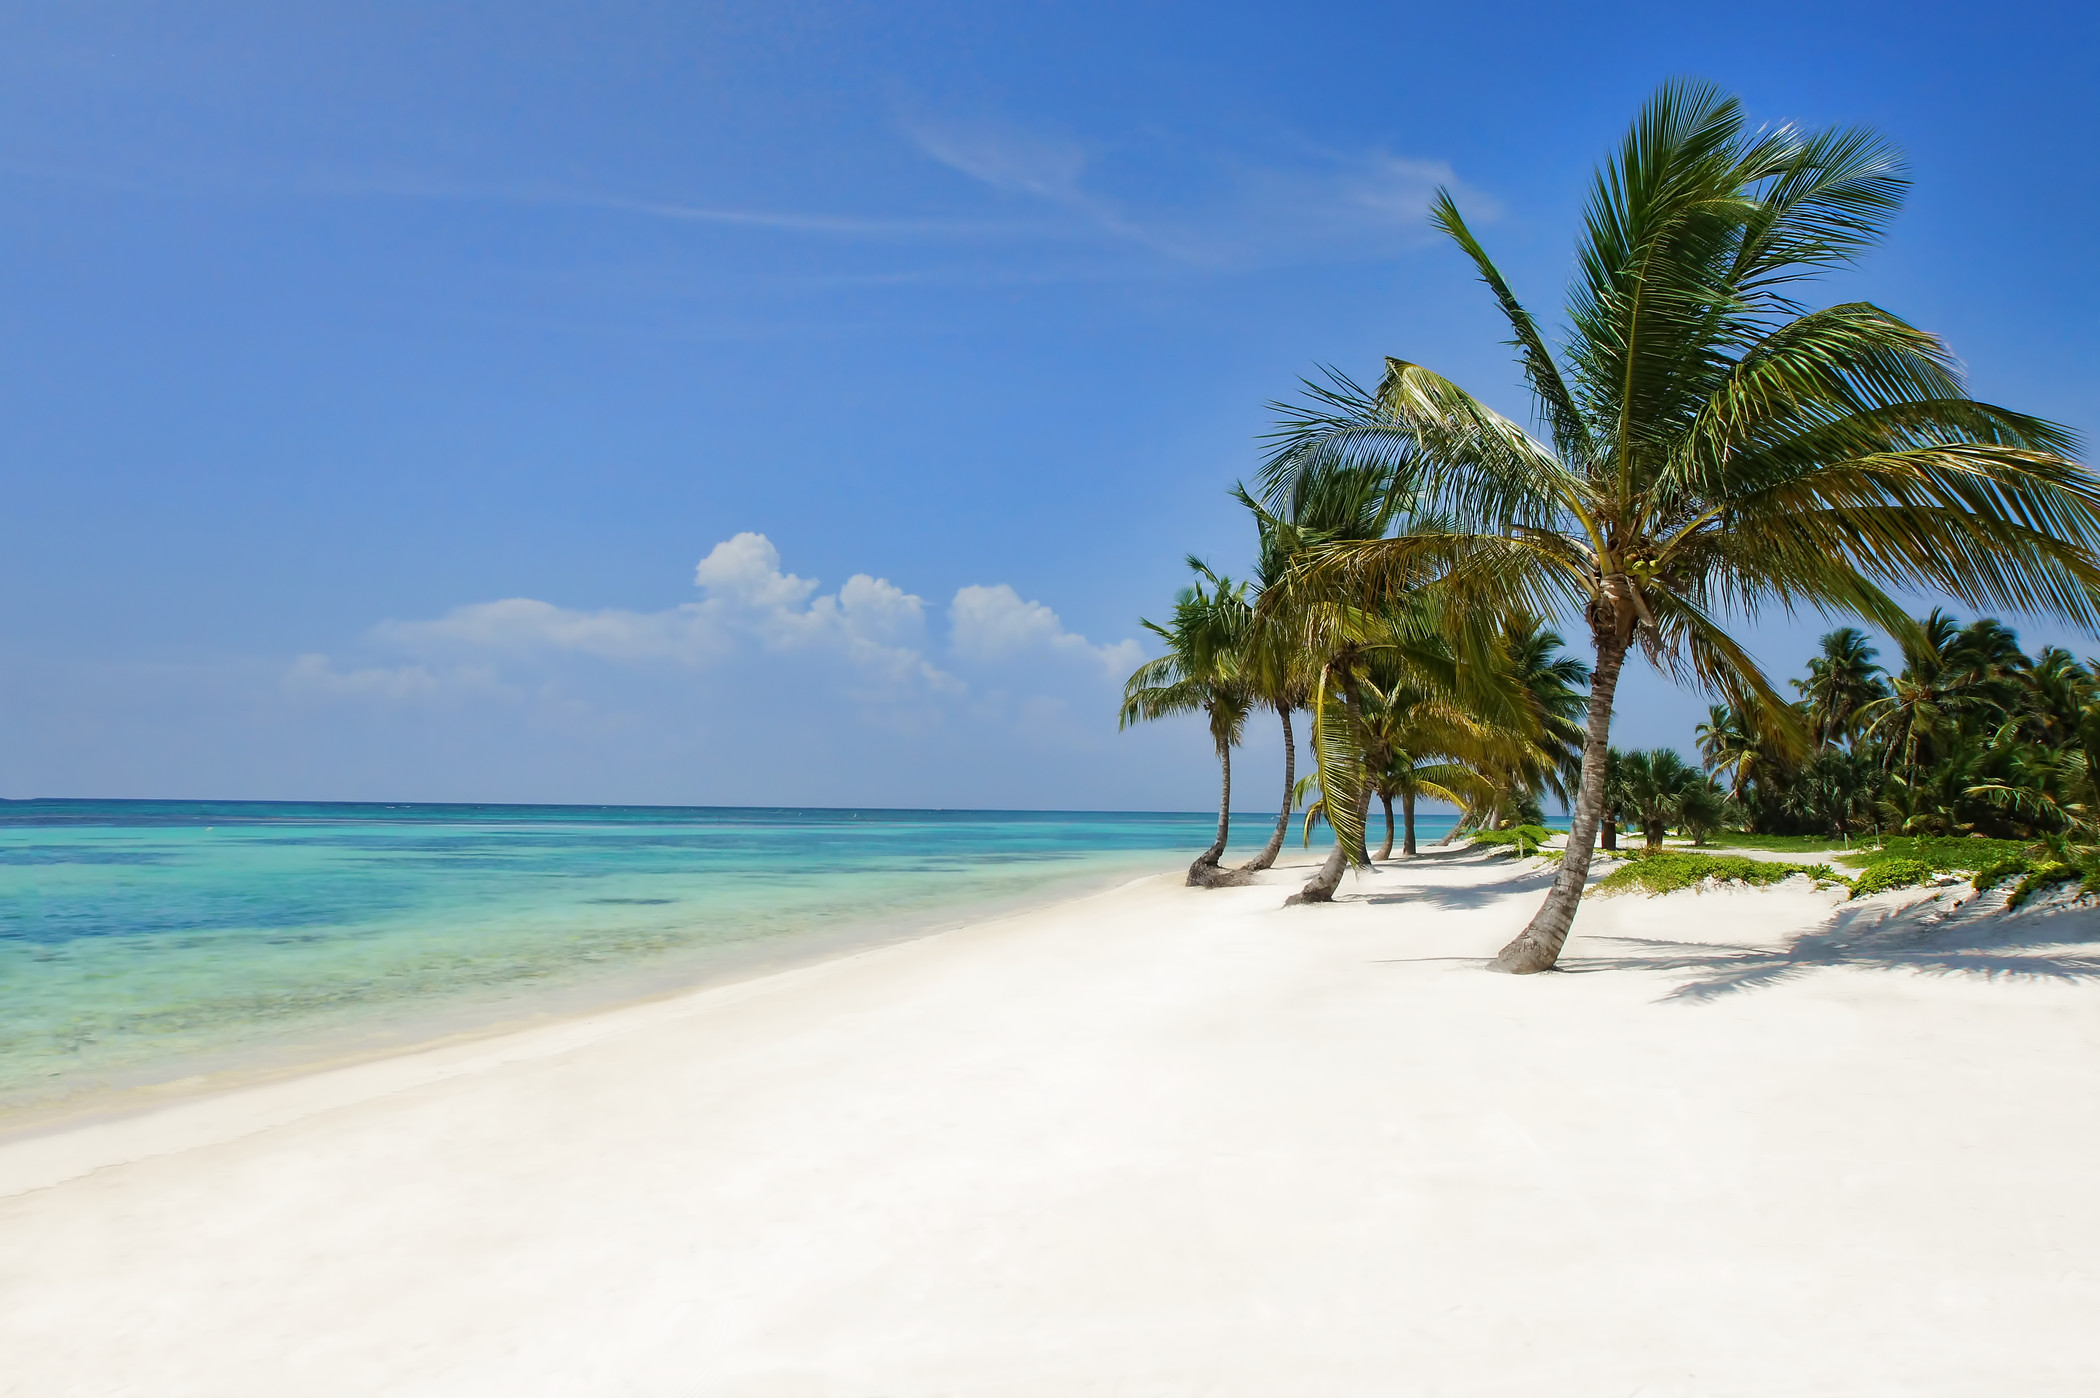 Dominican republic wallpapers high quality download free - Wallpaper dominican republic ...